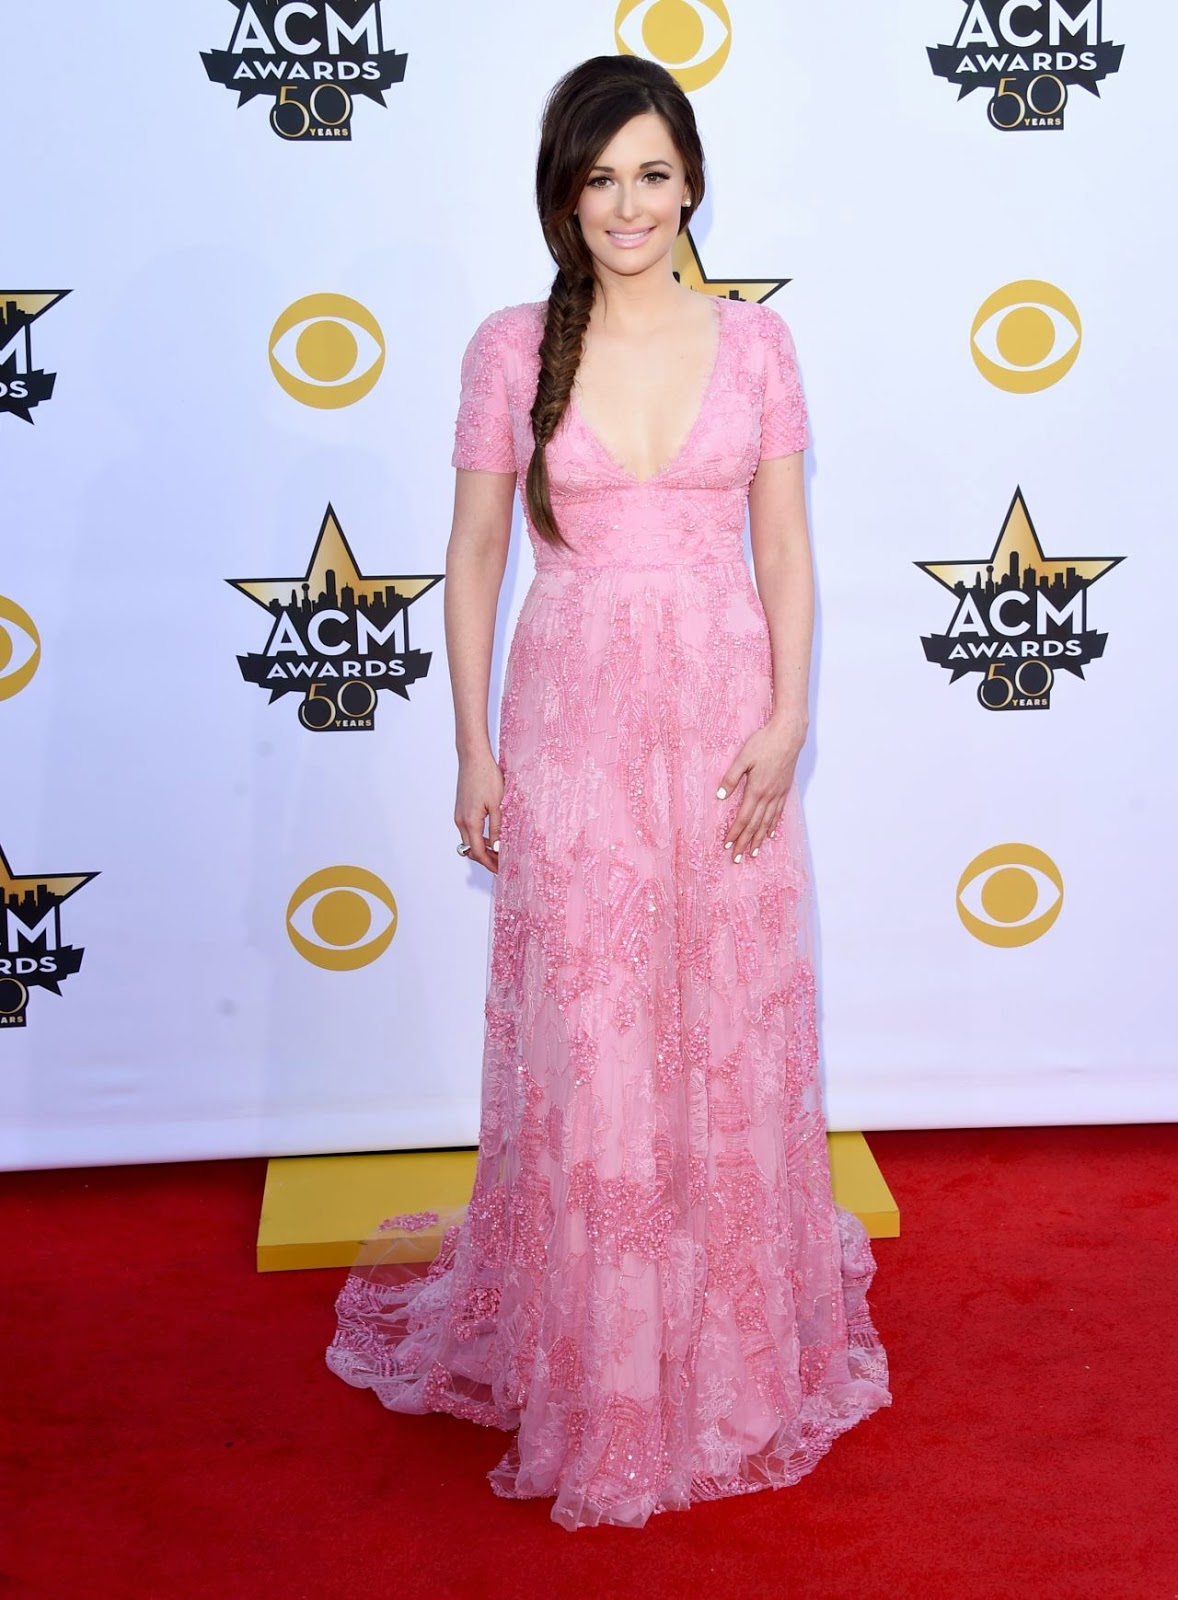 Kacey Musgraves is pretty in pink at the 2015 ACM Awards